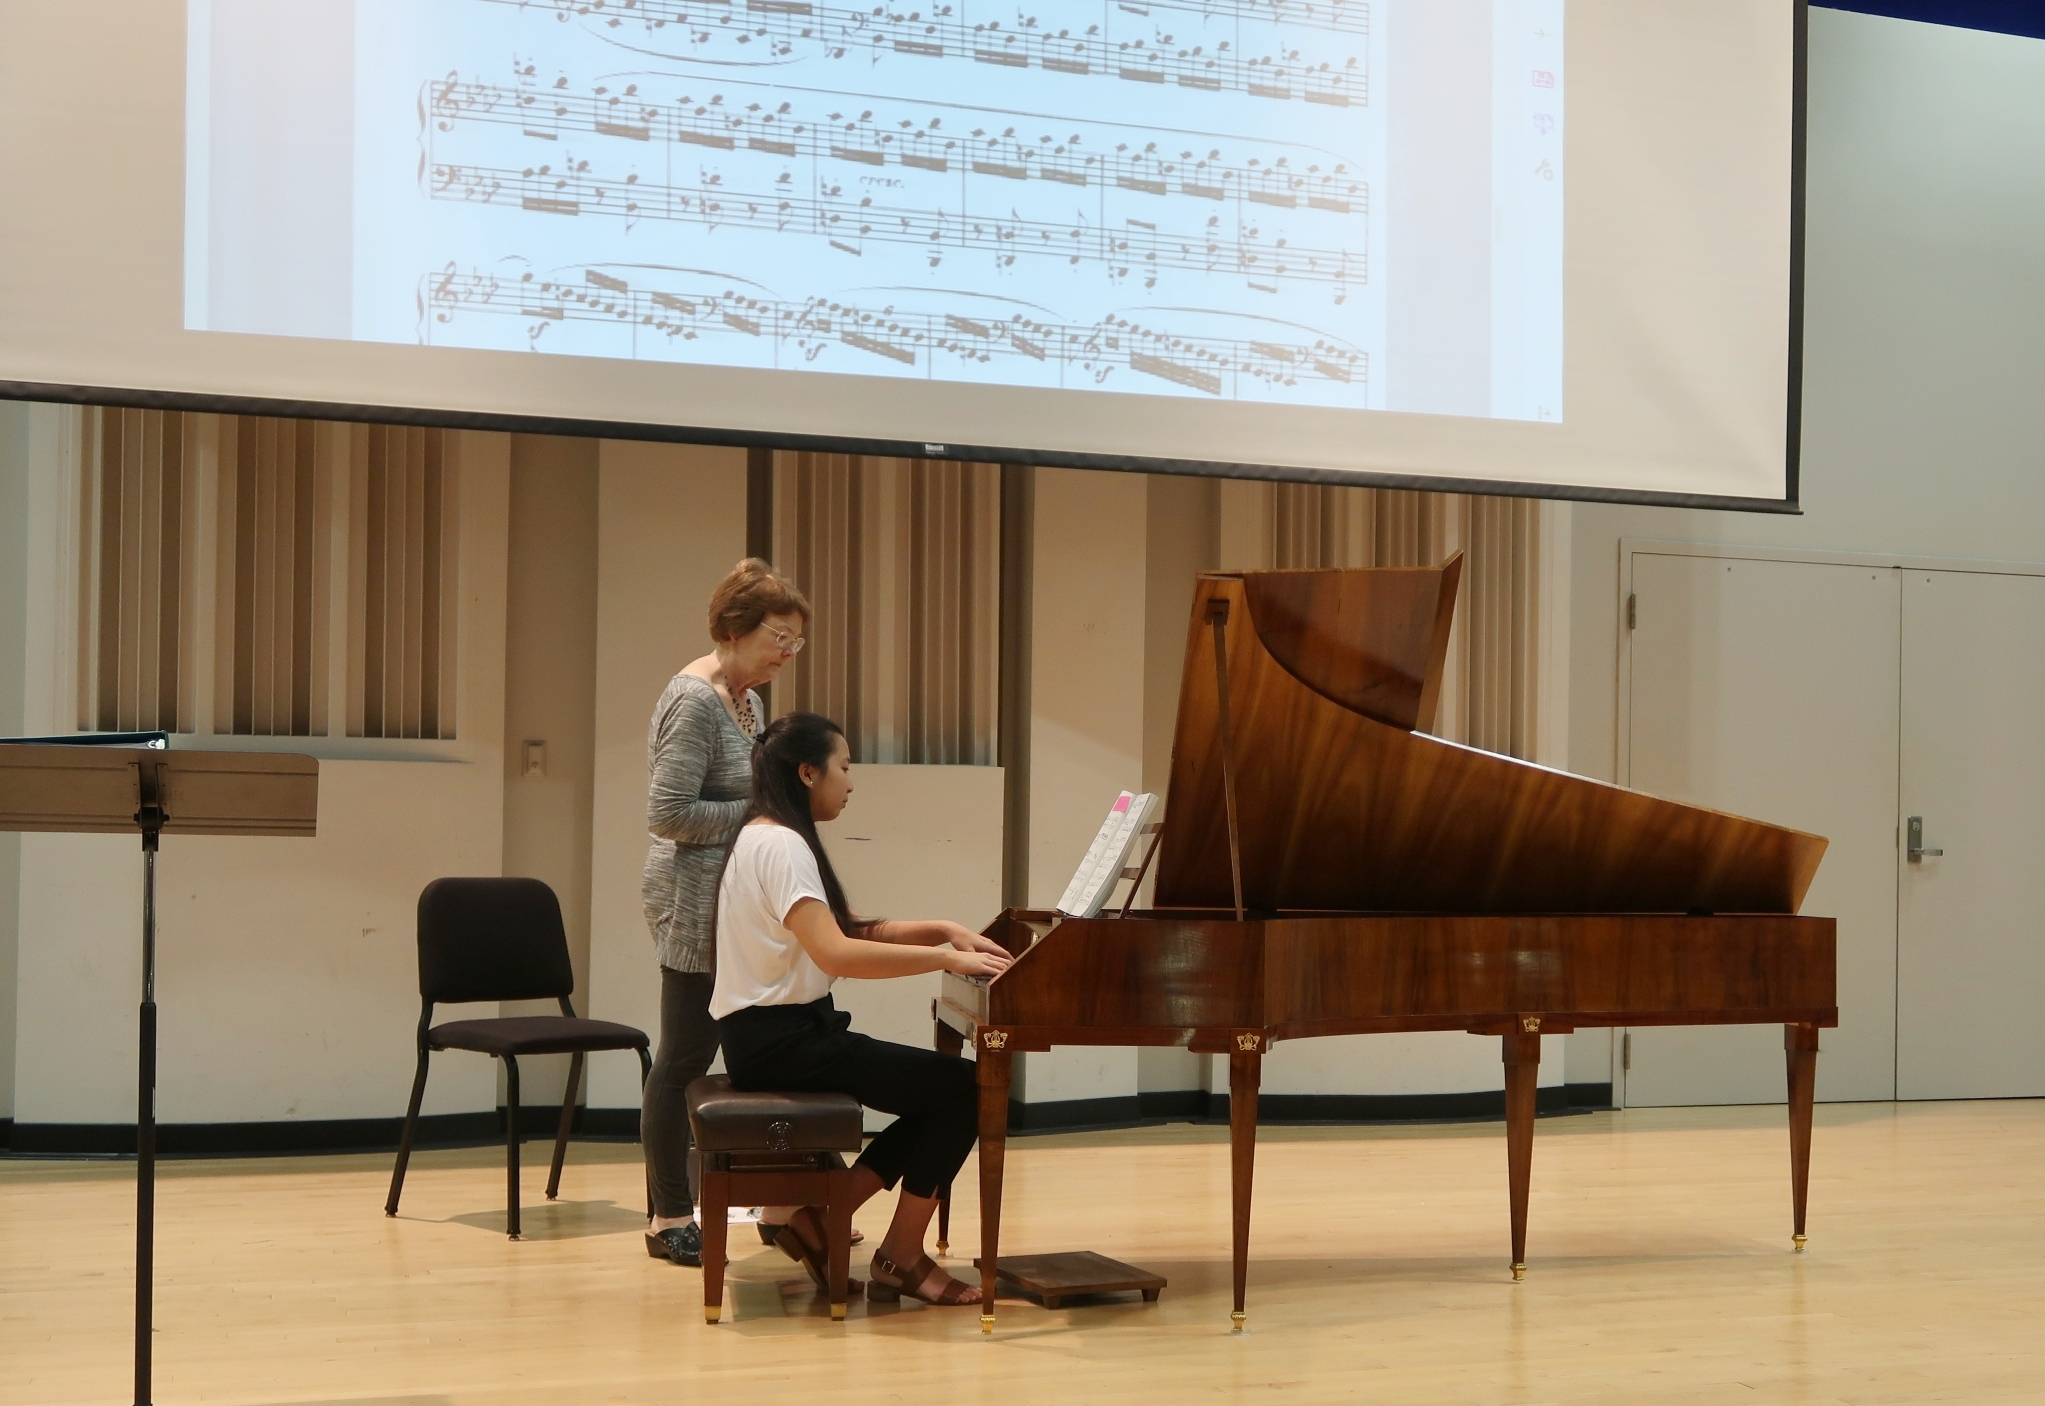 Guest Workshop on Fortepiano